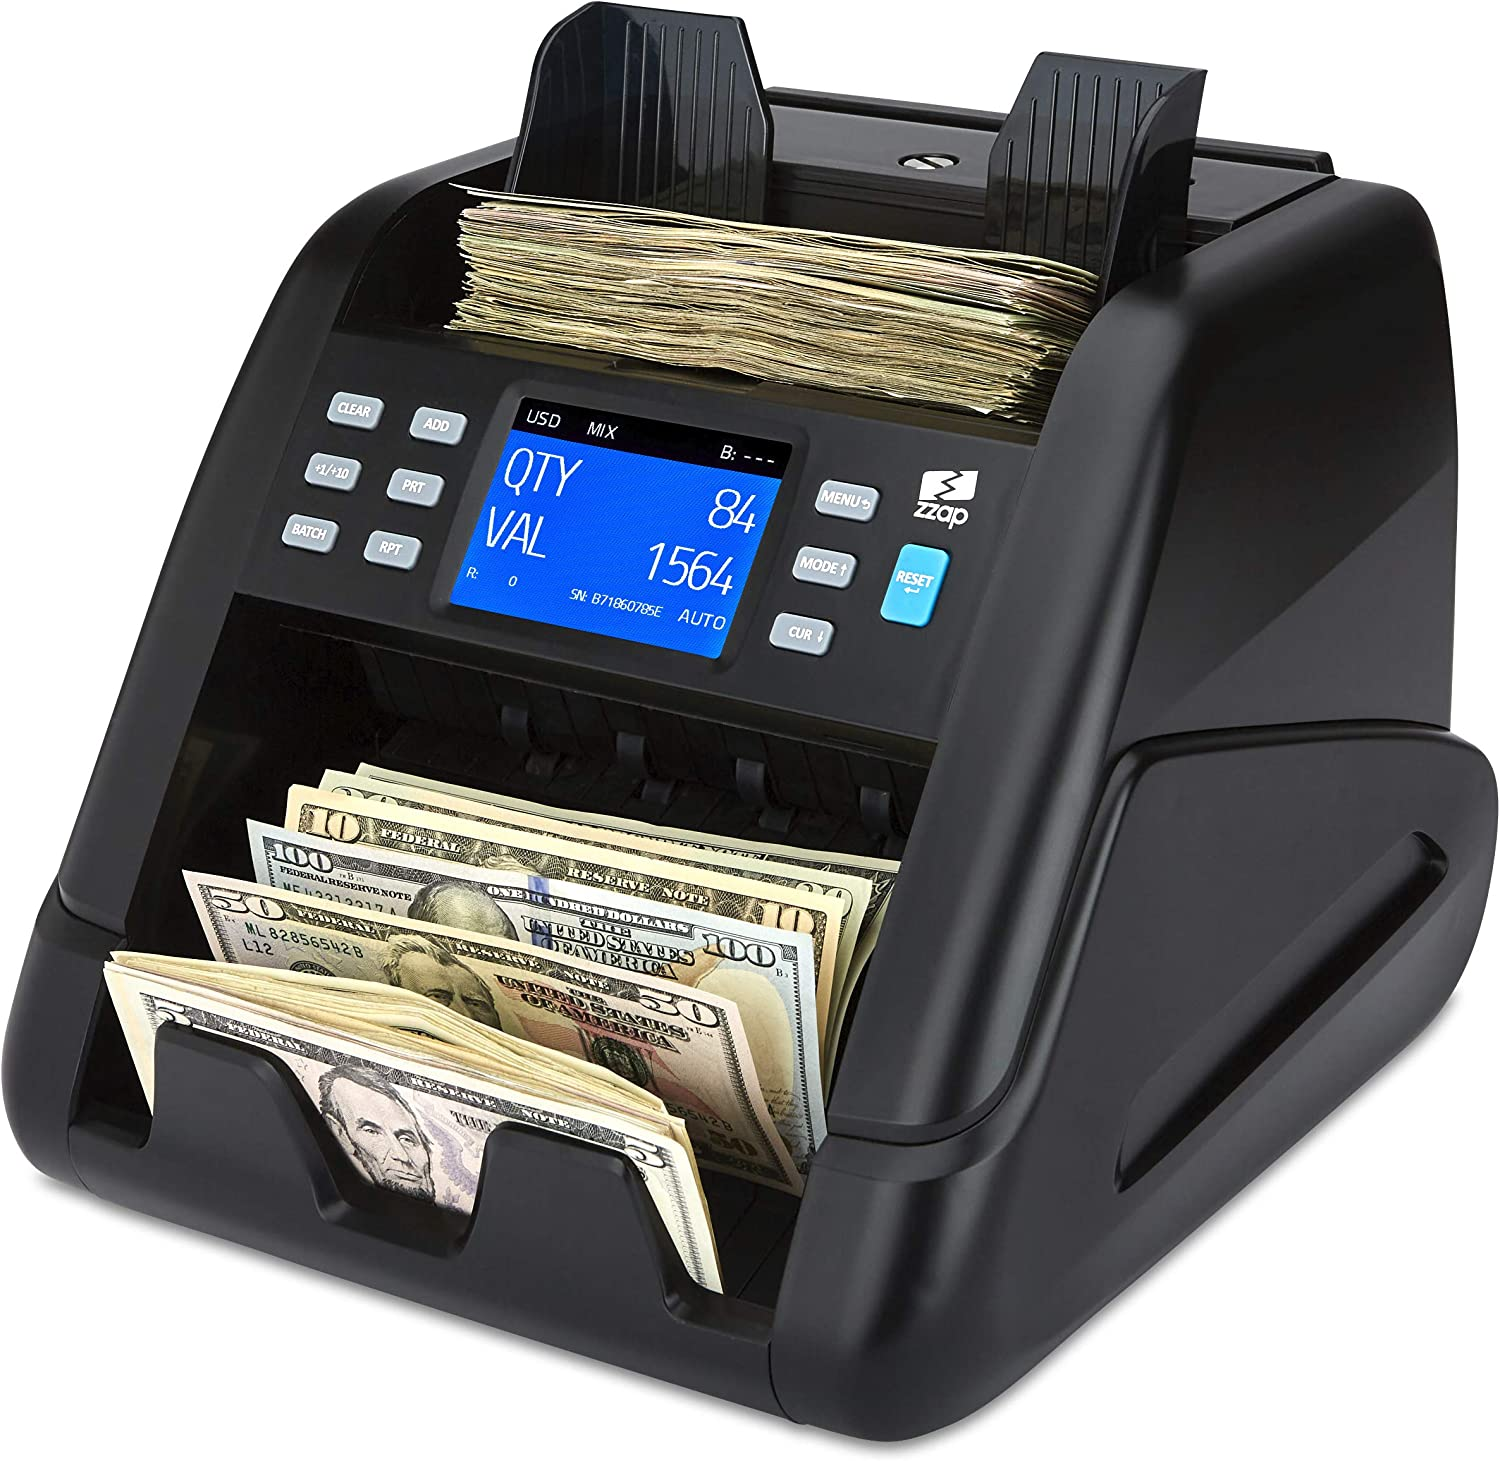 ZZap NC55 Mixed Denomination Bill Counter with Counterfeit Detection - Value Money Cash Machine Currency : Office Products